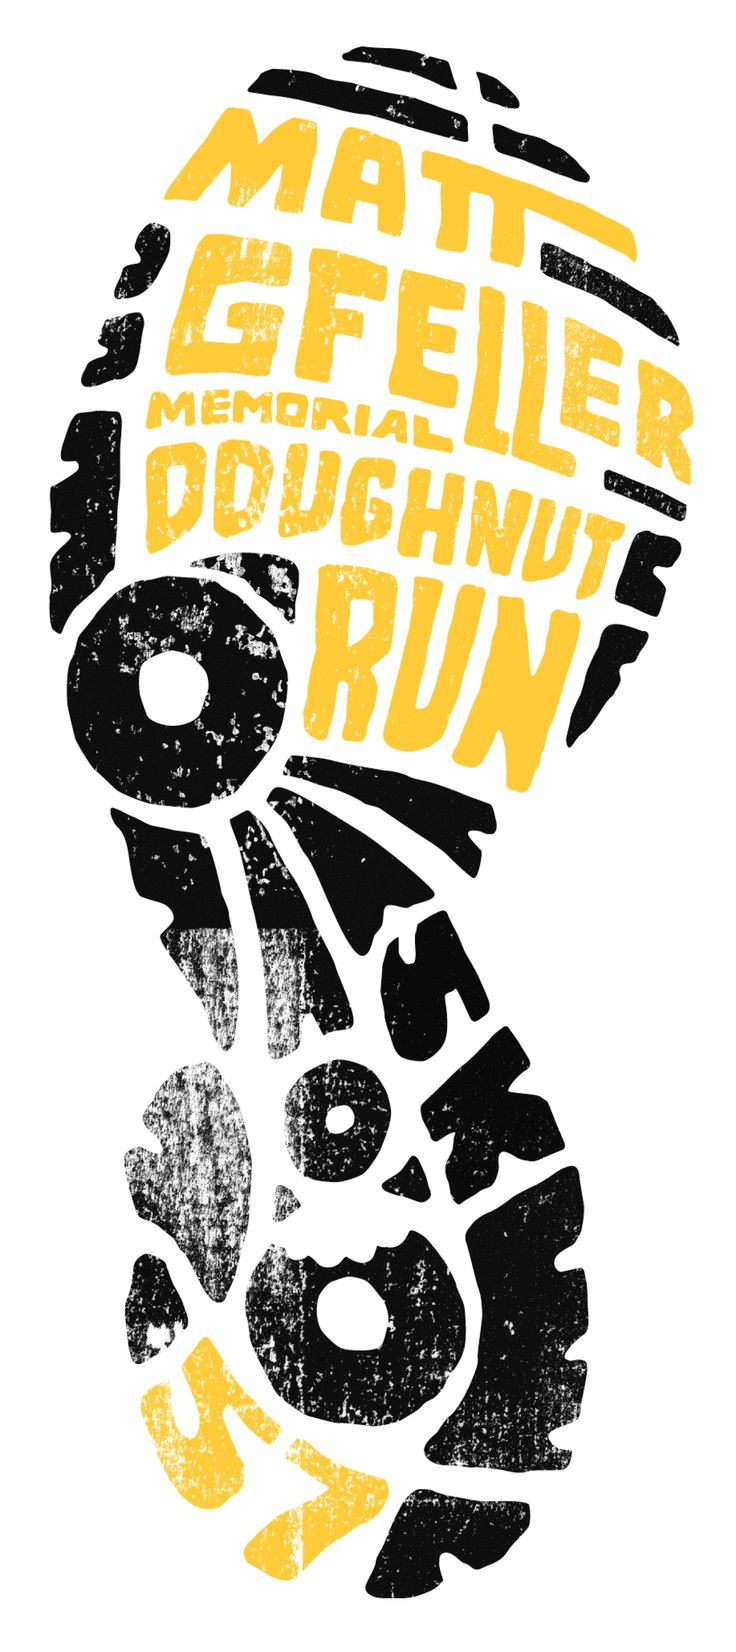 T shirt poster design - Fun Run Logo Design By Brady Tyler The Shape Of The Footprint Here Is Easily Recognizable And Has The Treads Of The Shoe As Letters